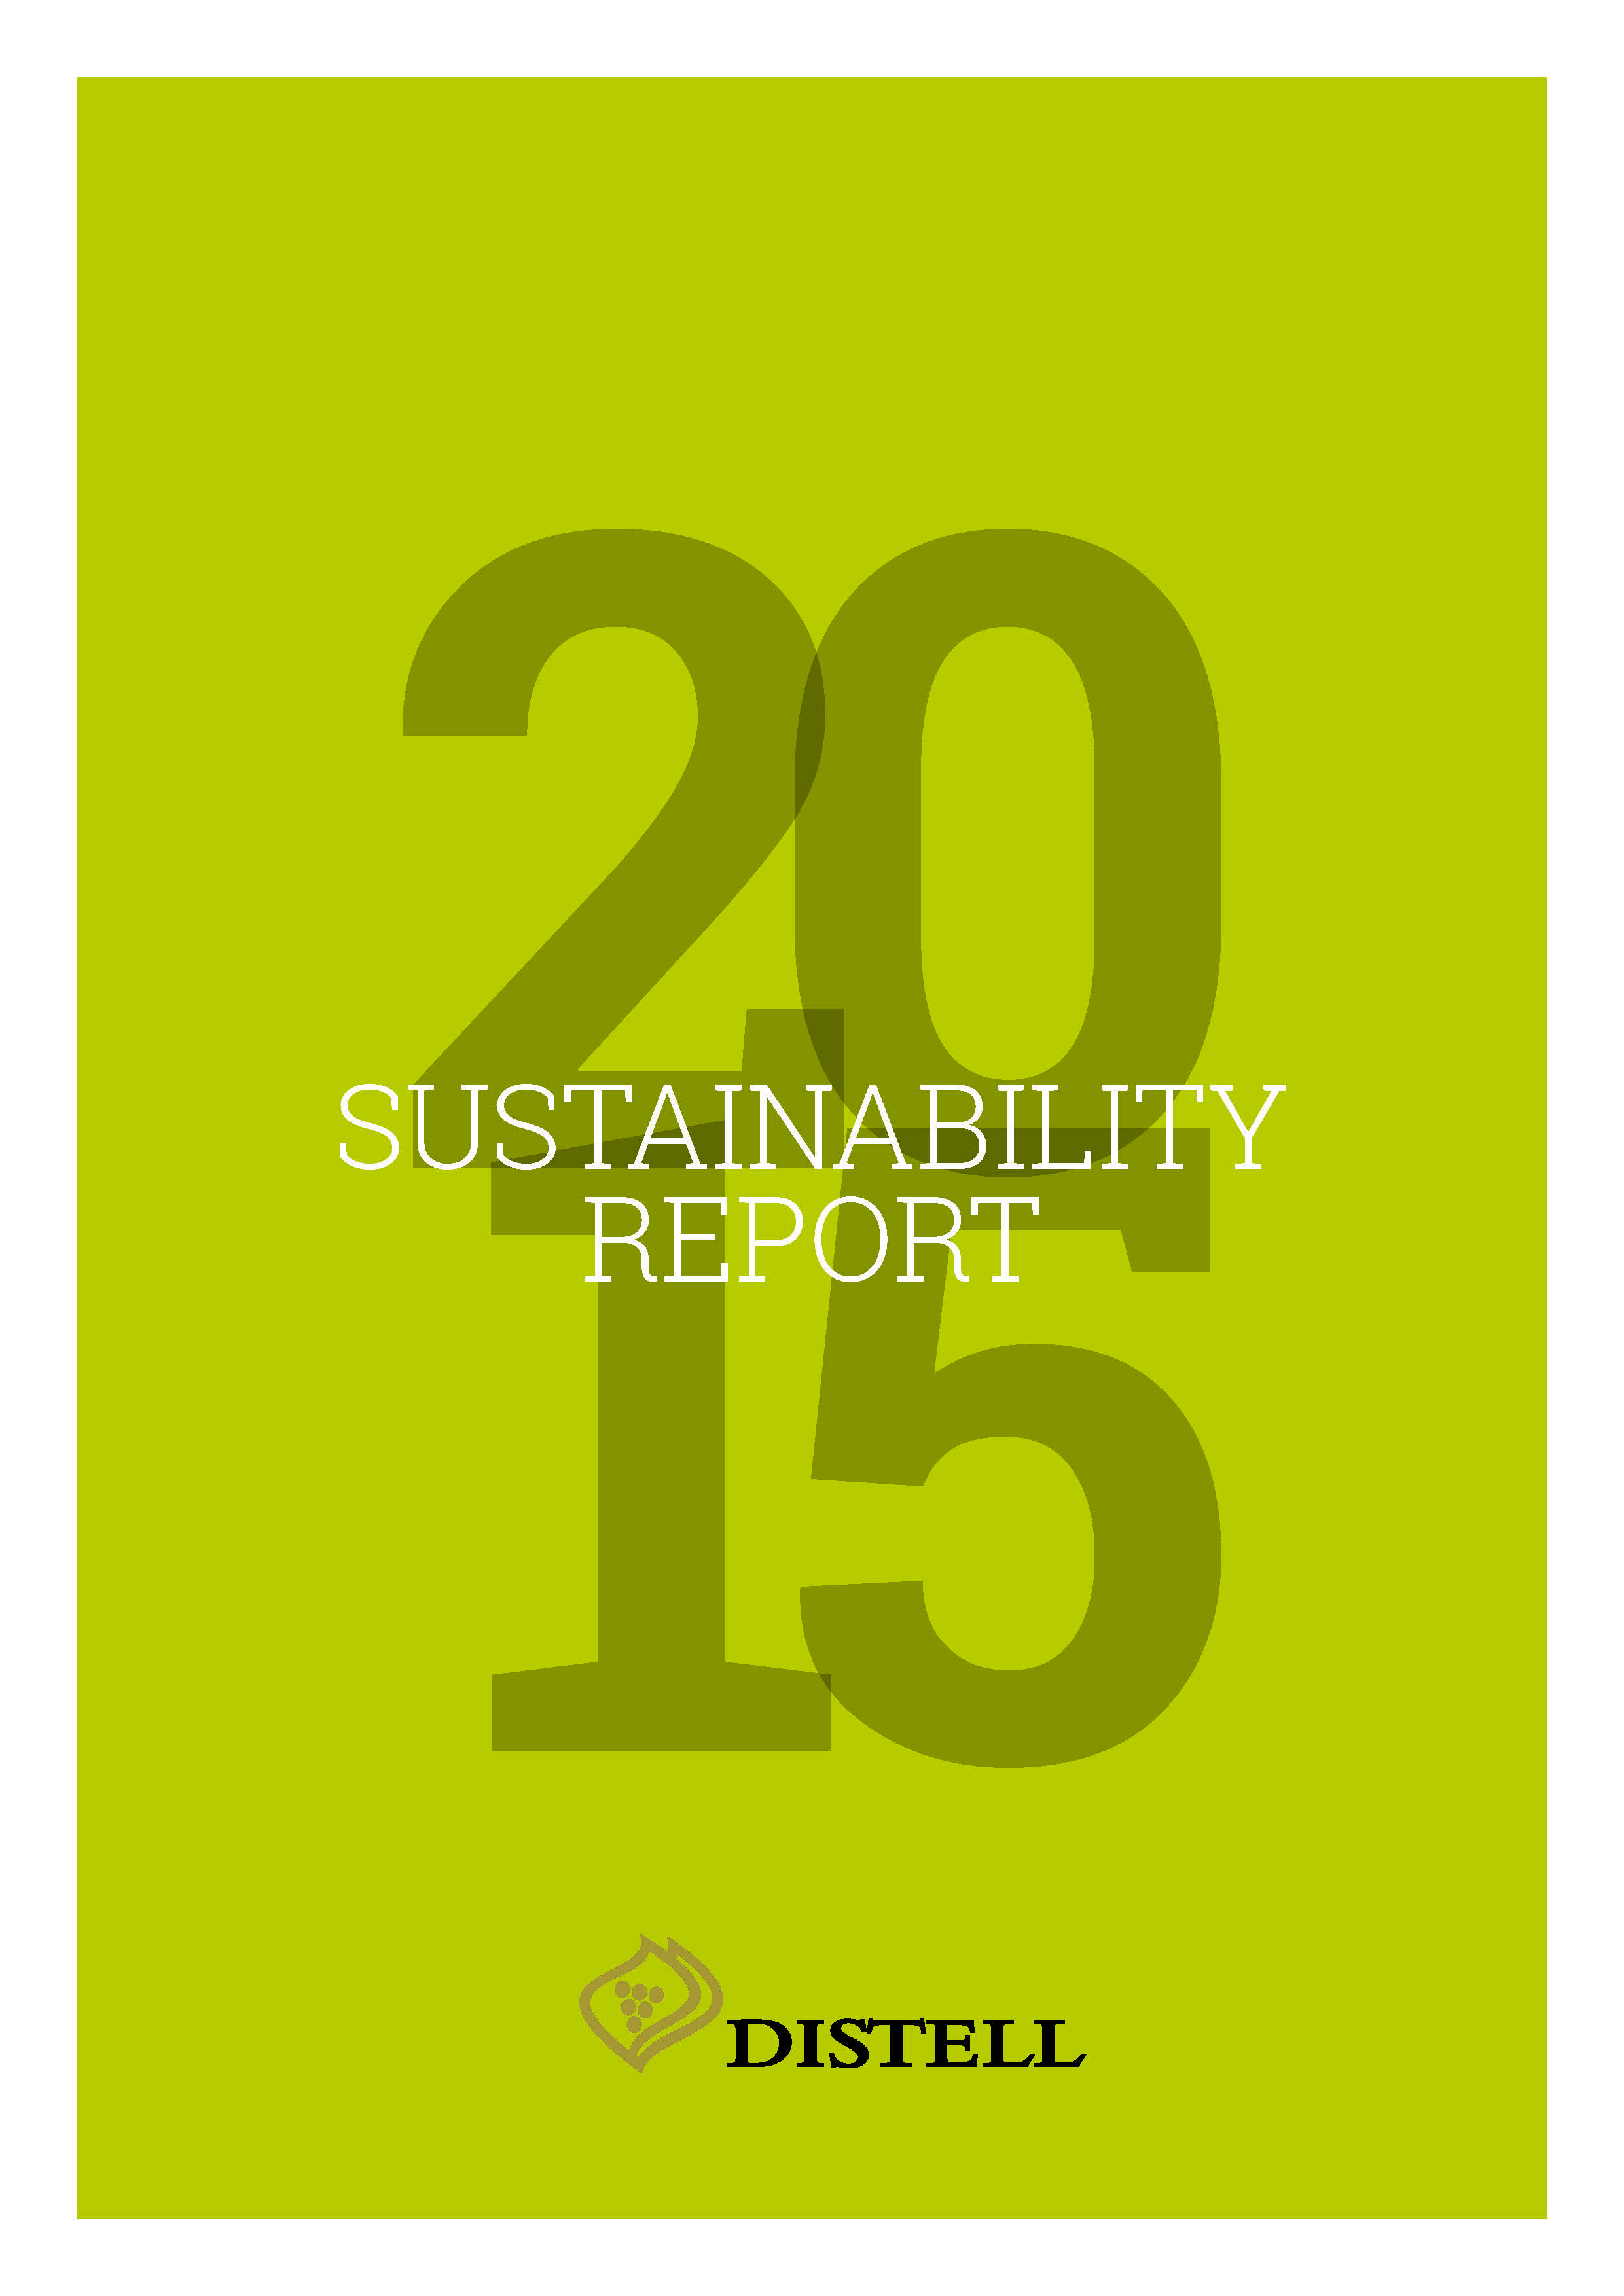 2015 Distell Sustainability Report - Jan2016_Page_01